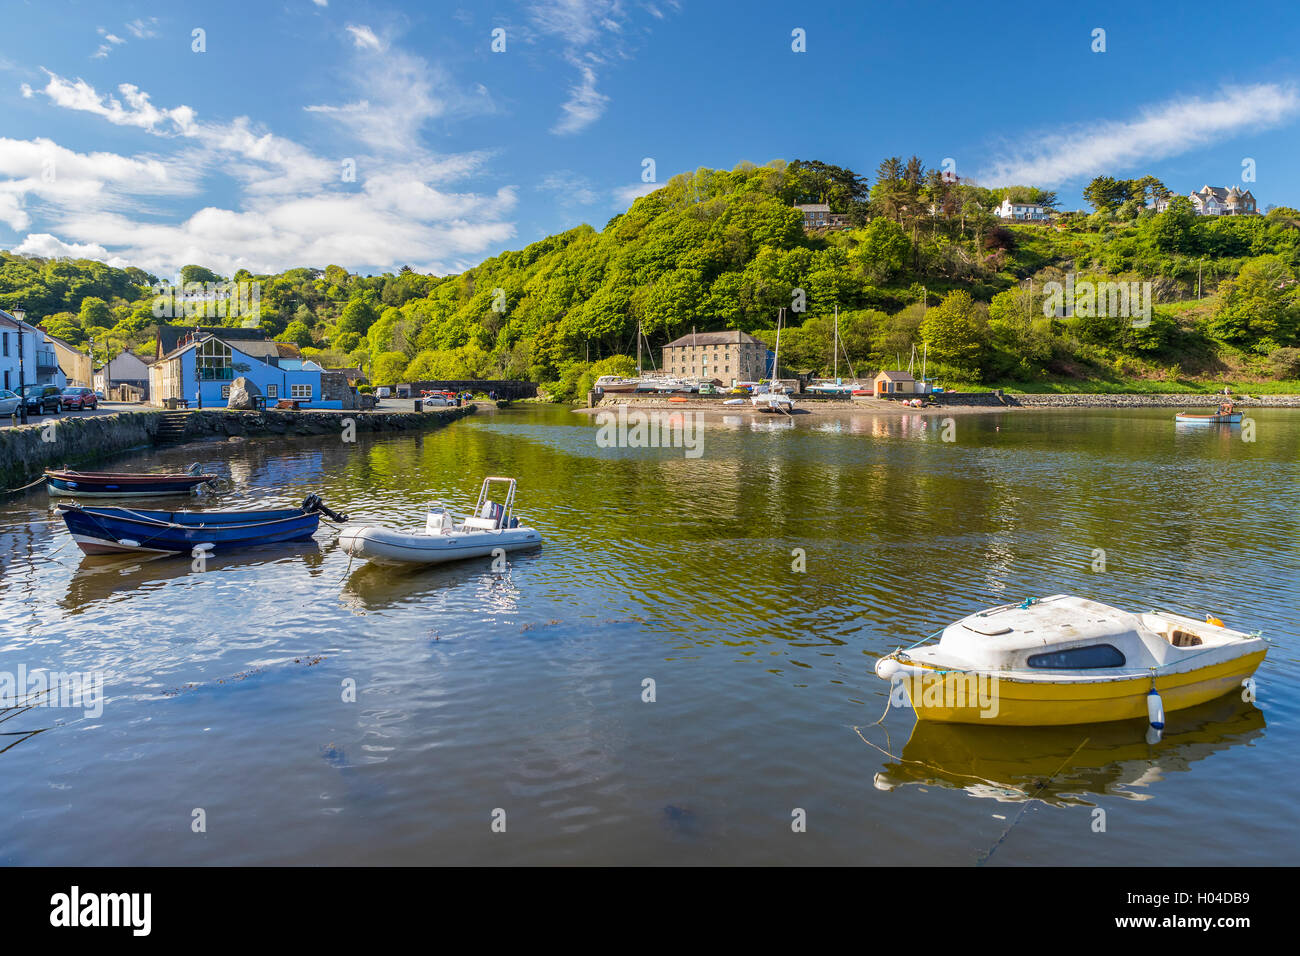 Lower Fishguard, Pembrokeshire Coast National Park, Pembrokeshire, Wales, United Kingdom, Europe. - Stock Image